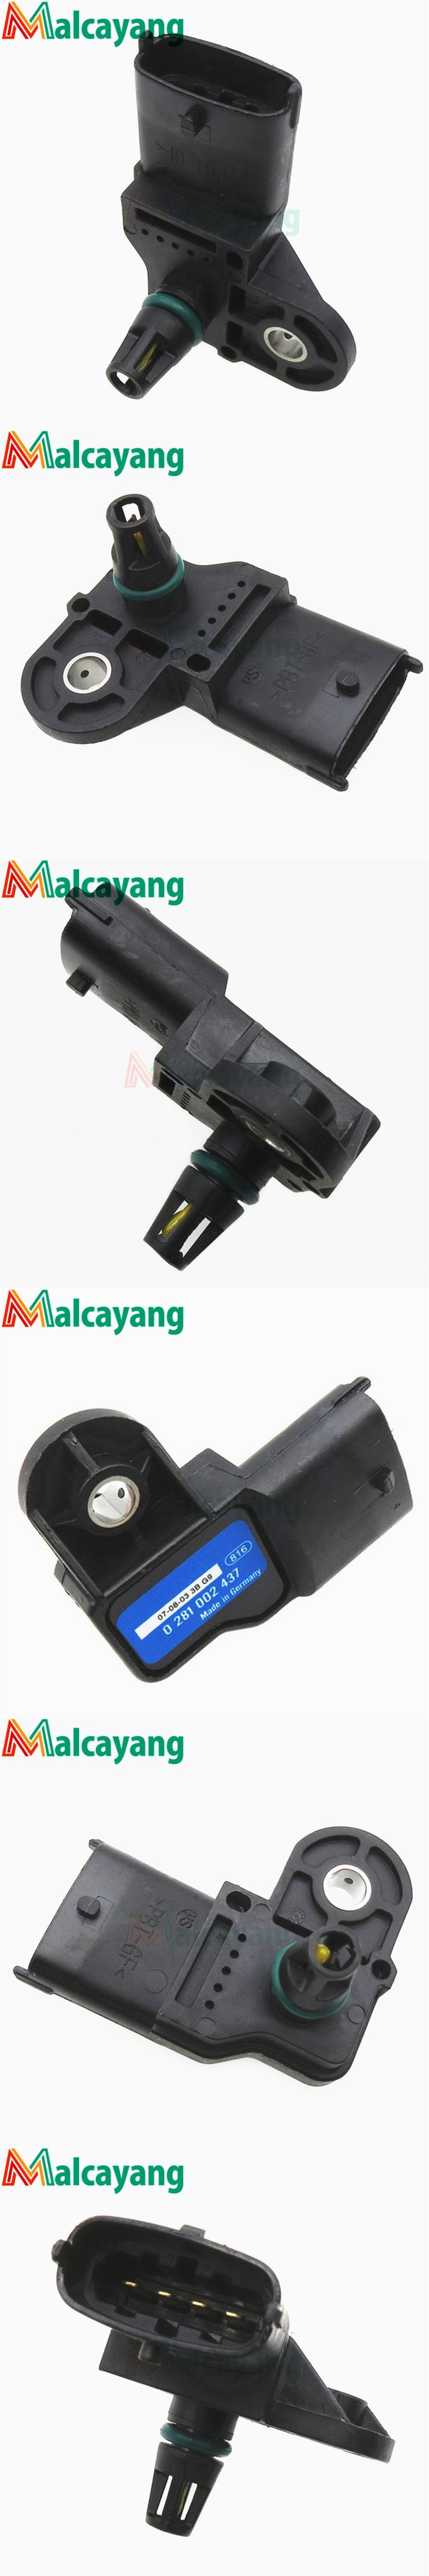 3 Bar Original Boost Map Sensor For Peugeot Boxer Bipper Citroen Nemo 1.2 1.3 Hdi Ford Ranger 2.5 3.0 TDCi 1920.SS 1636.61